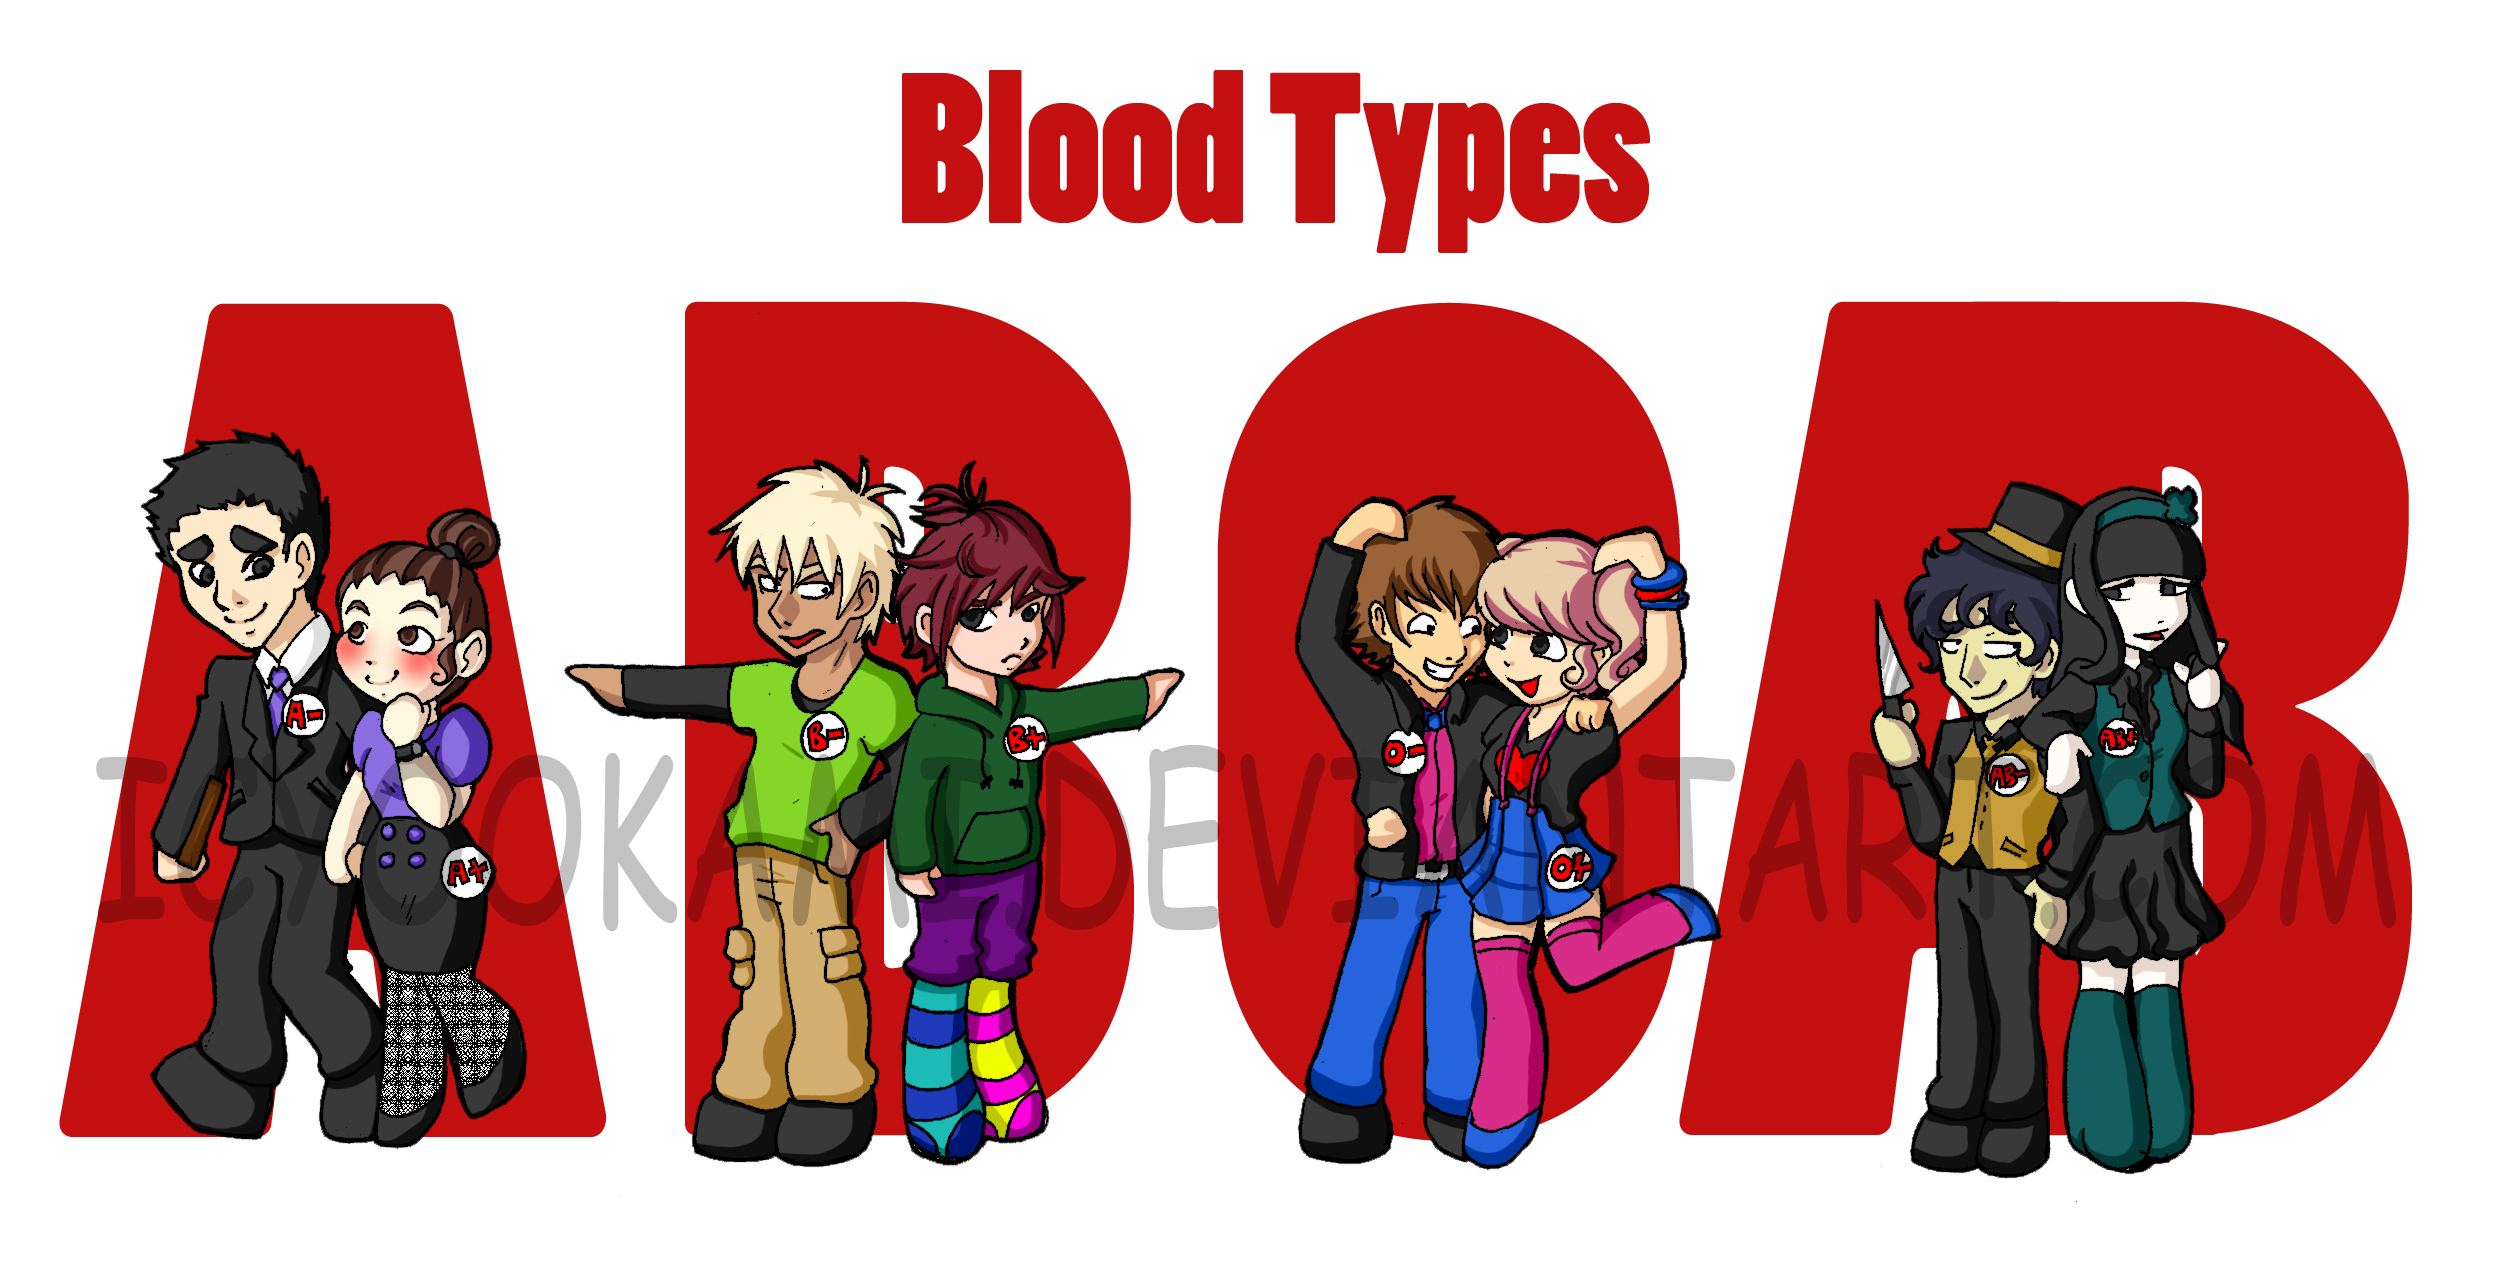 Type B Anime Characters : The muses of a bear cub bloodtype personalities